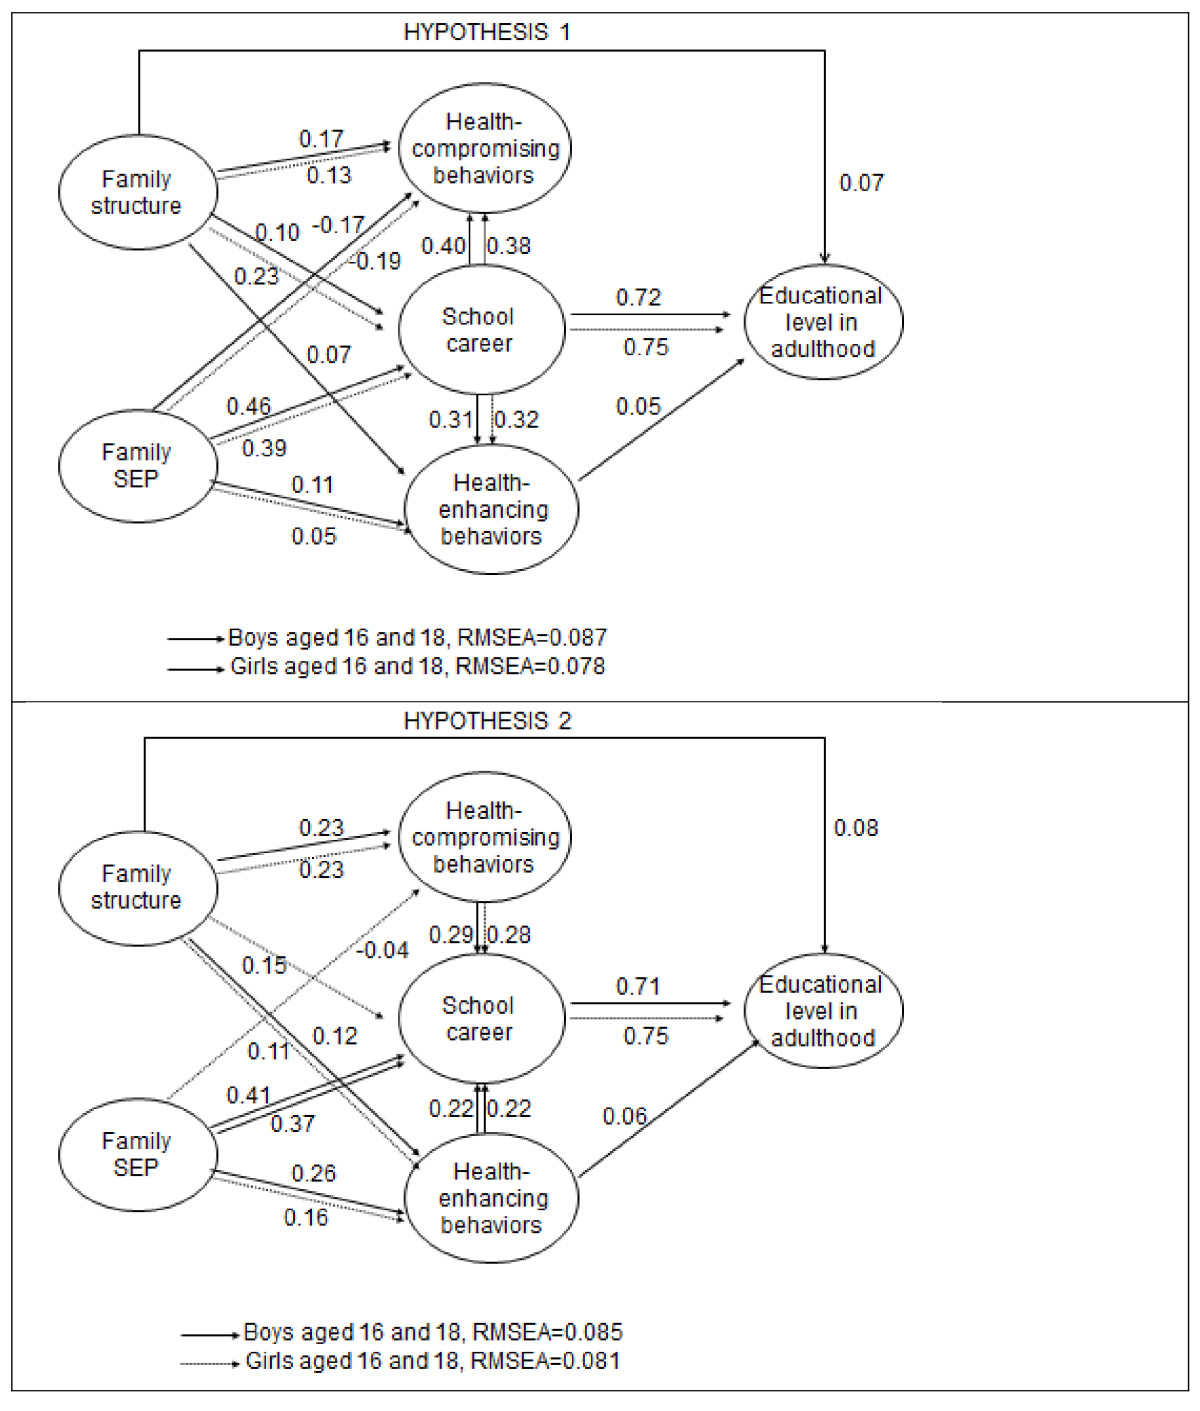 https://static-content.springer.com/image/art%3A10.1186%2F1471-2458-13-711/MediaObjects/12889_2012_Article_5657_Fig4_HTML.jpg